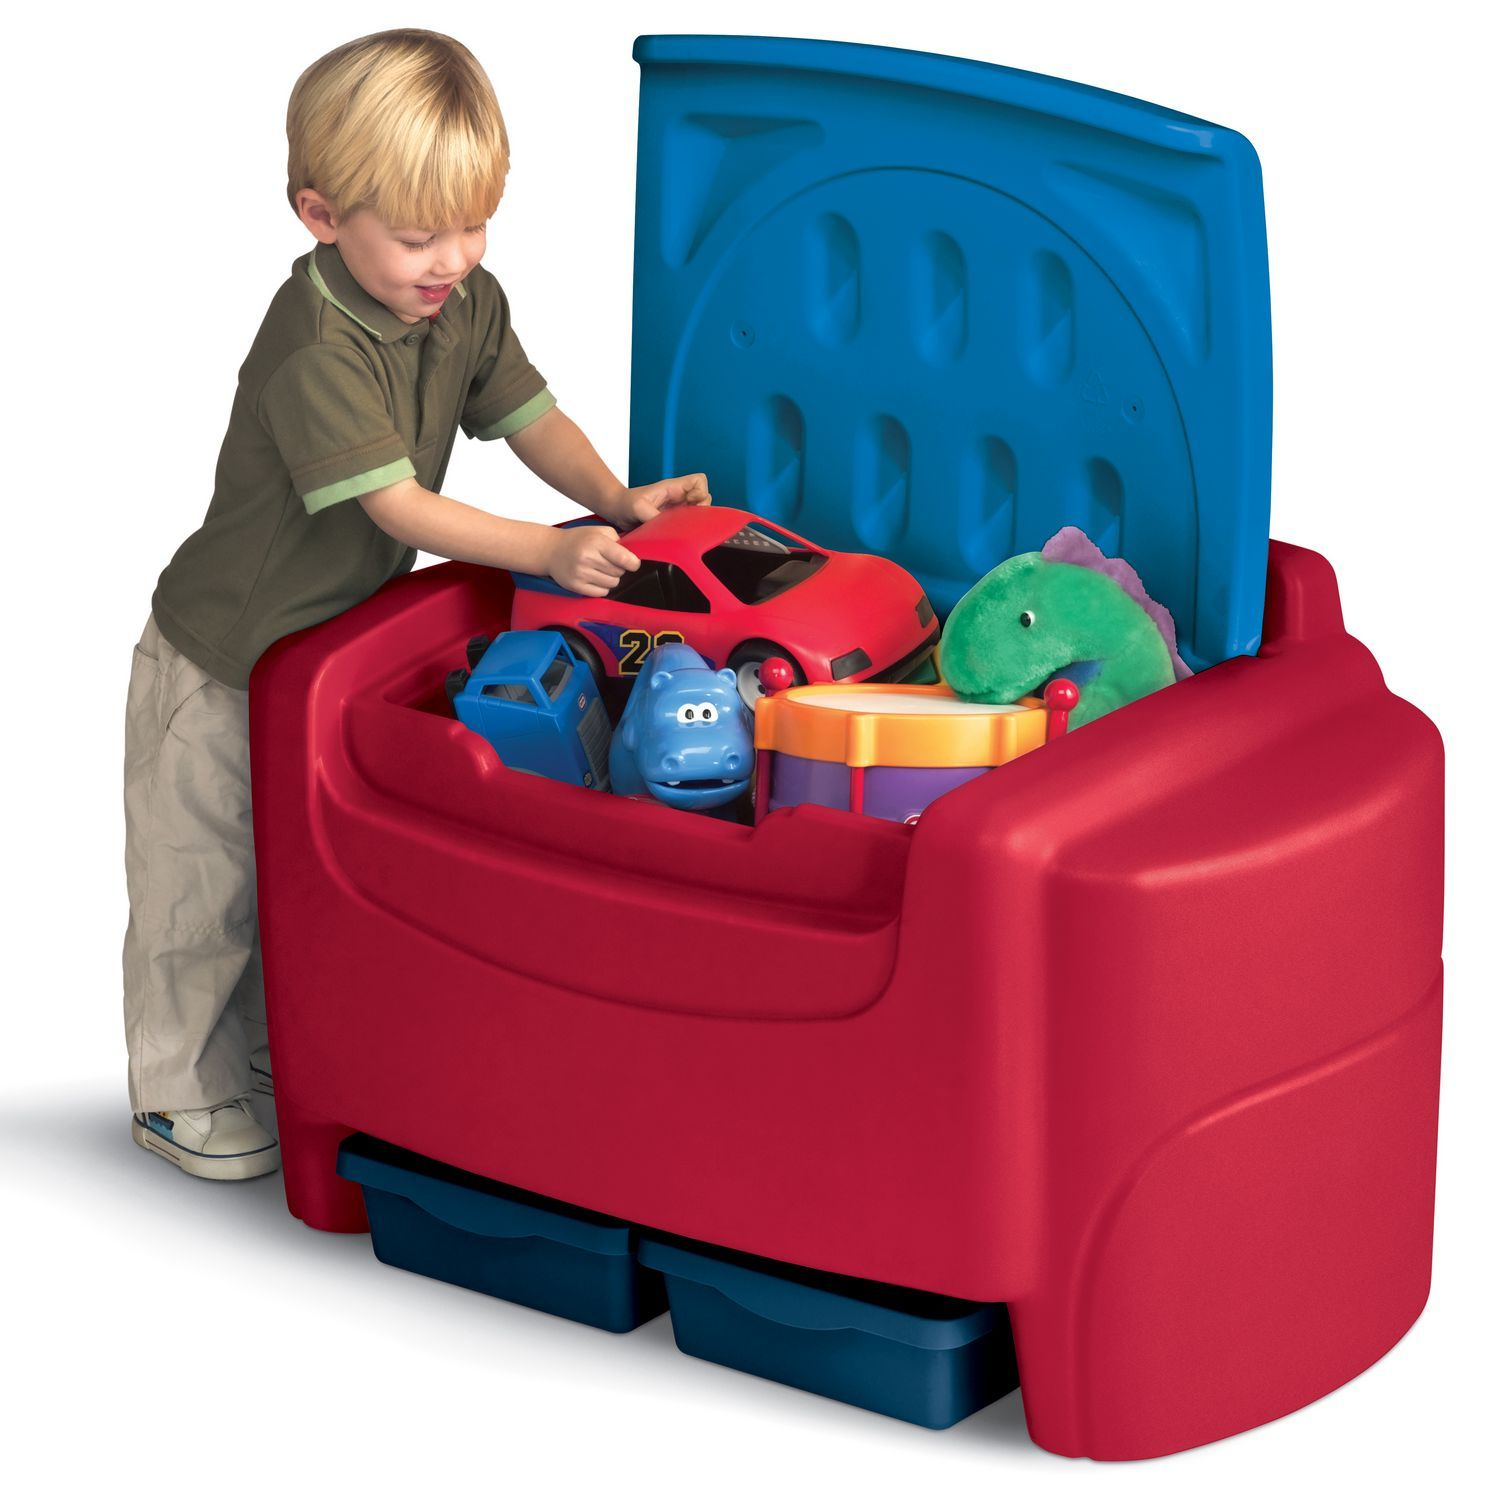 Little Tikes Sort 'n Store Toy Chest- Primary Colors Only $49.60